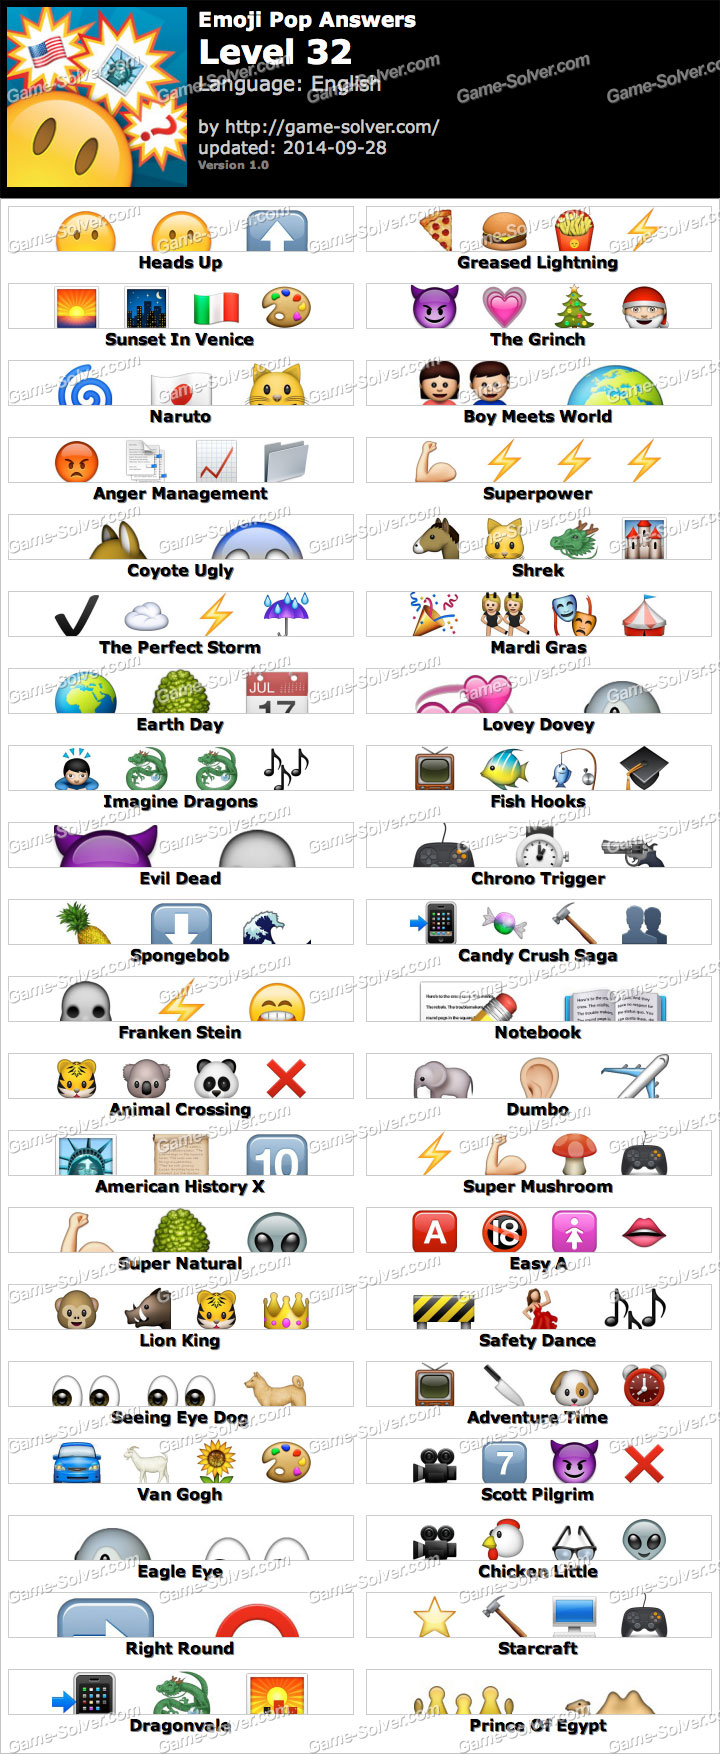 Emoji Pop Level 32 - Game Solver